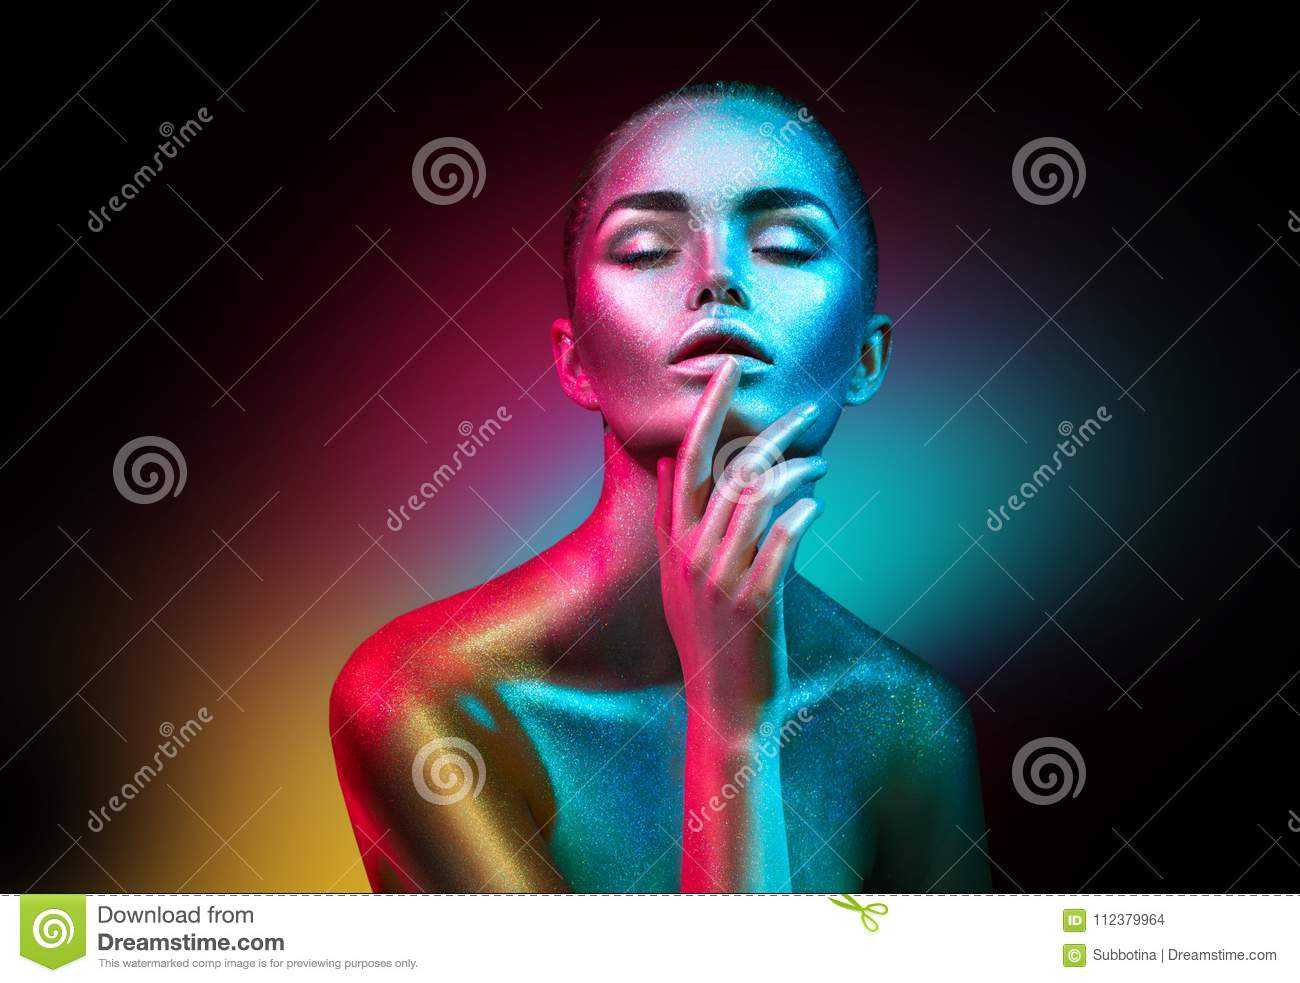 Download Fashion Model Woman In Colorful Bright Sparkles And Neon Lights Posing In Studio, Portrait Of Beautiful Girl Stock Photo - Image of blue, model: 112379964